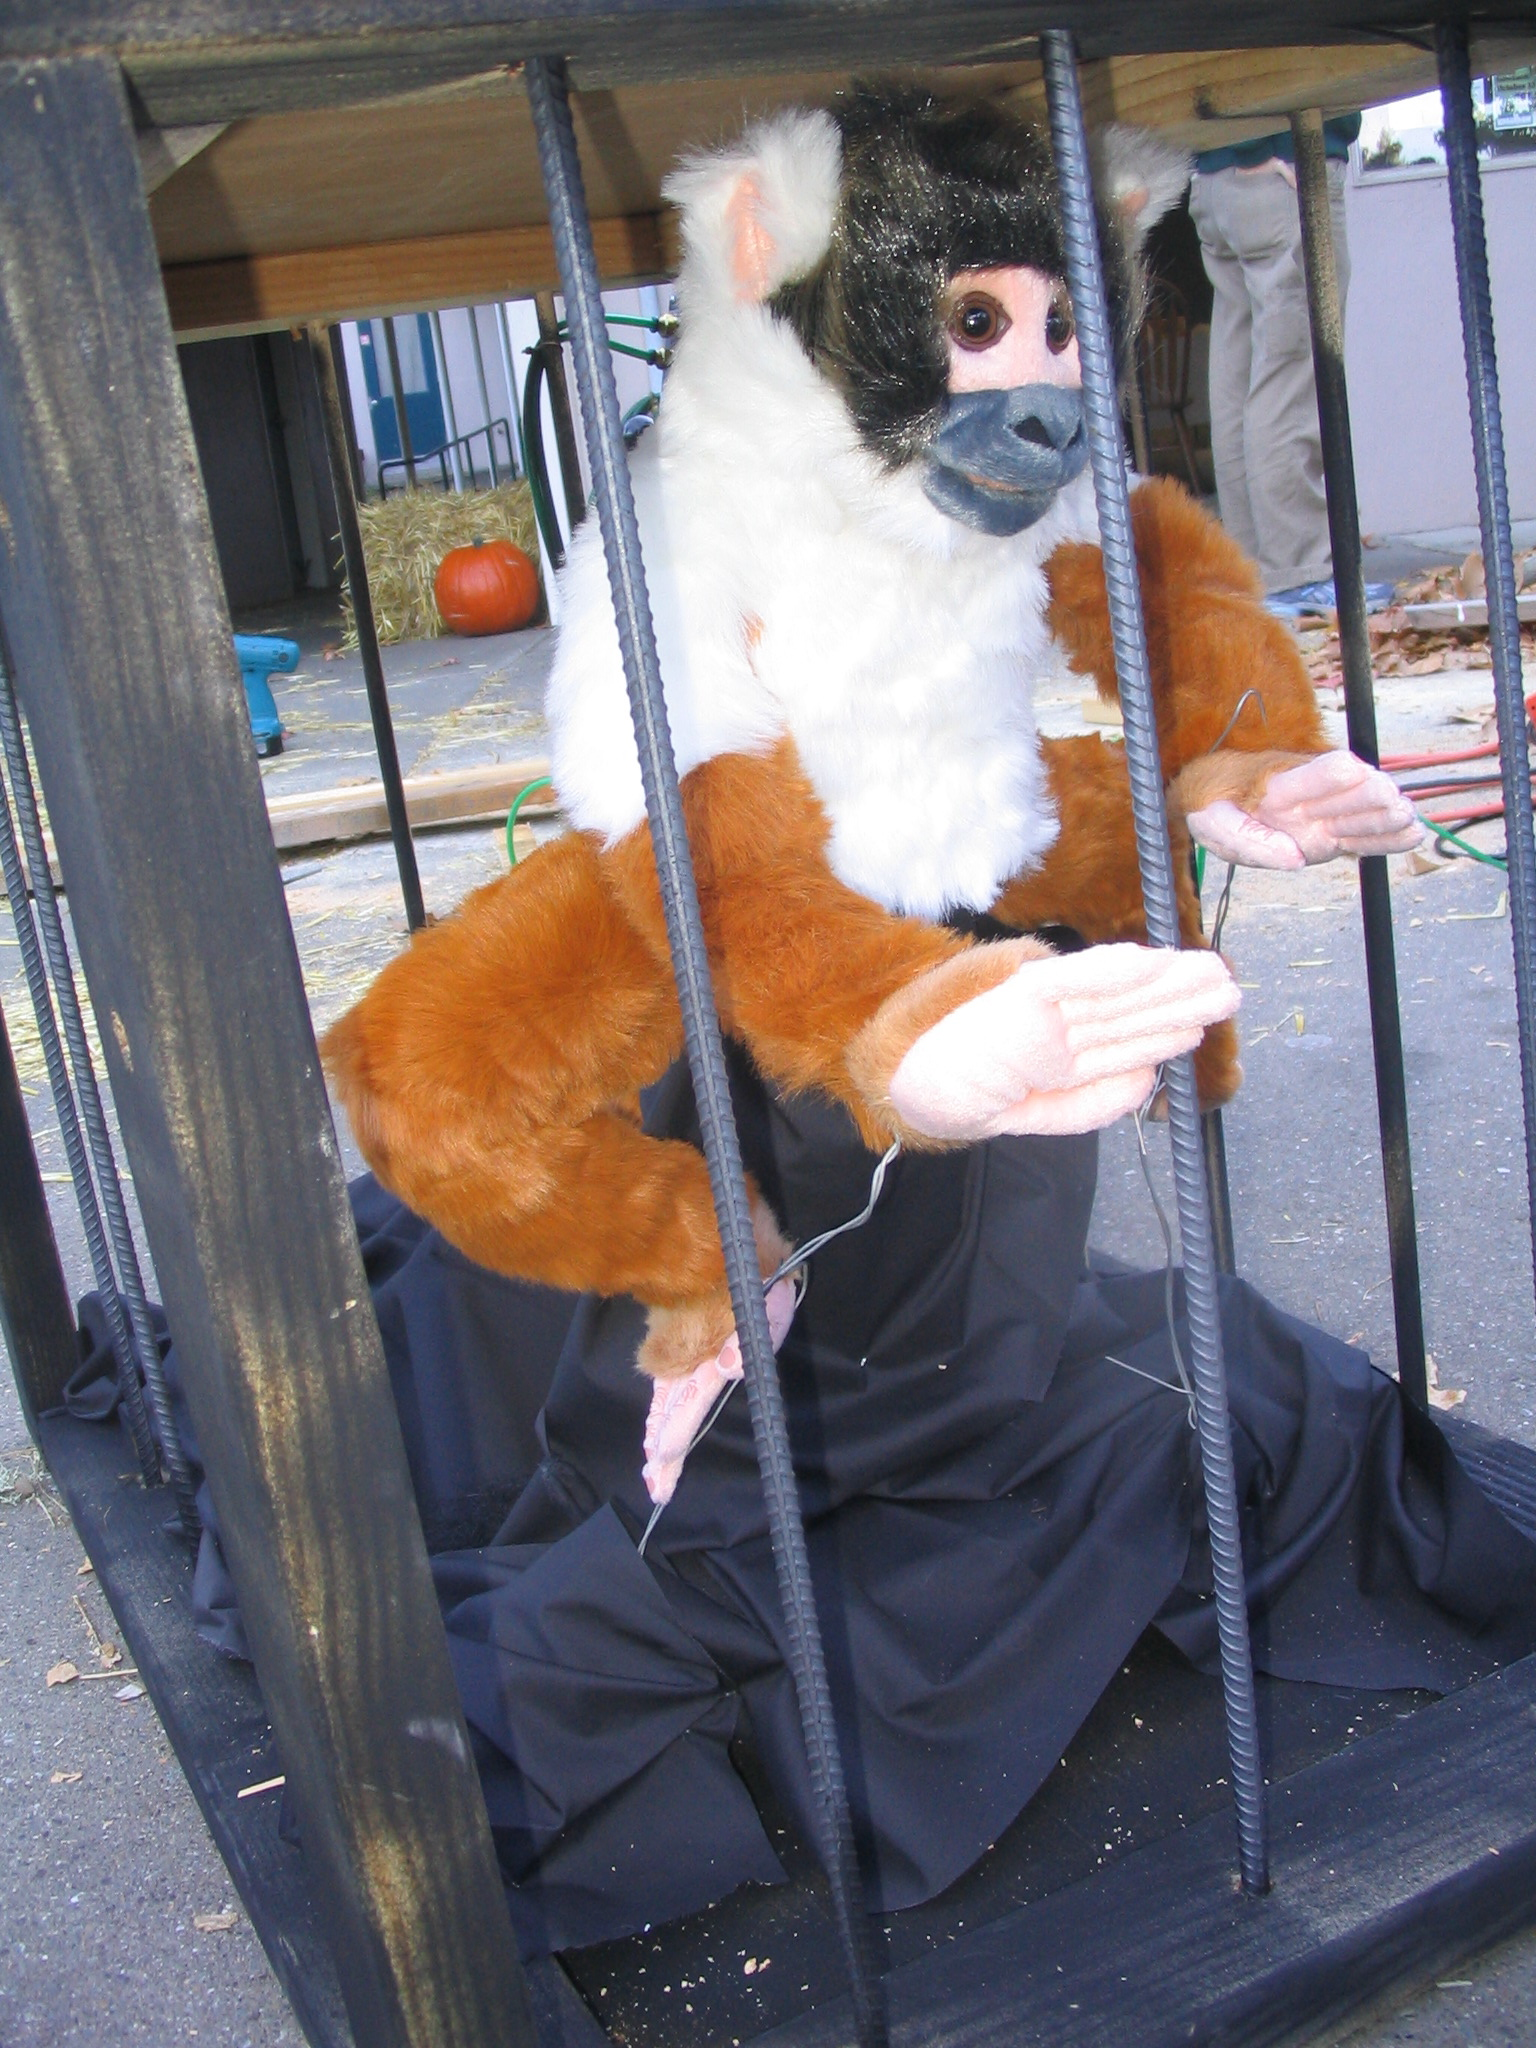 Build a Pneumatically Actuated Yeti in a Cage for a Halloween Haunted House